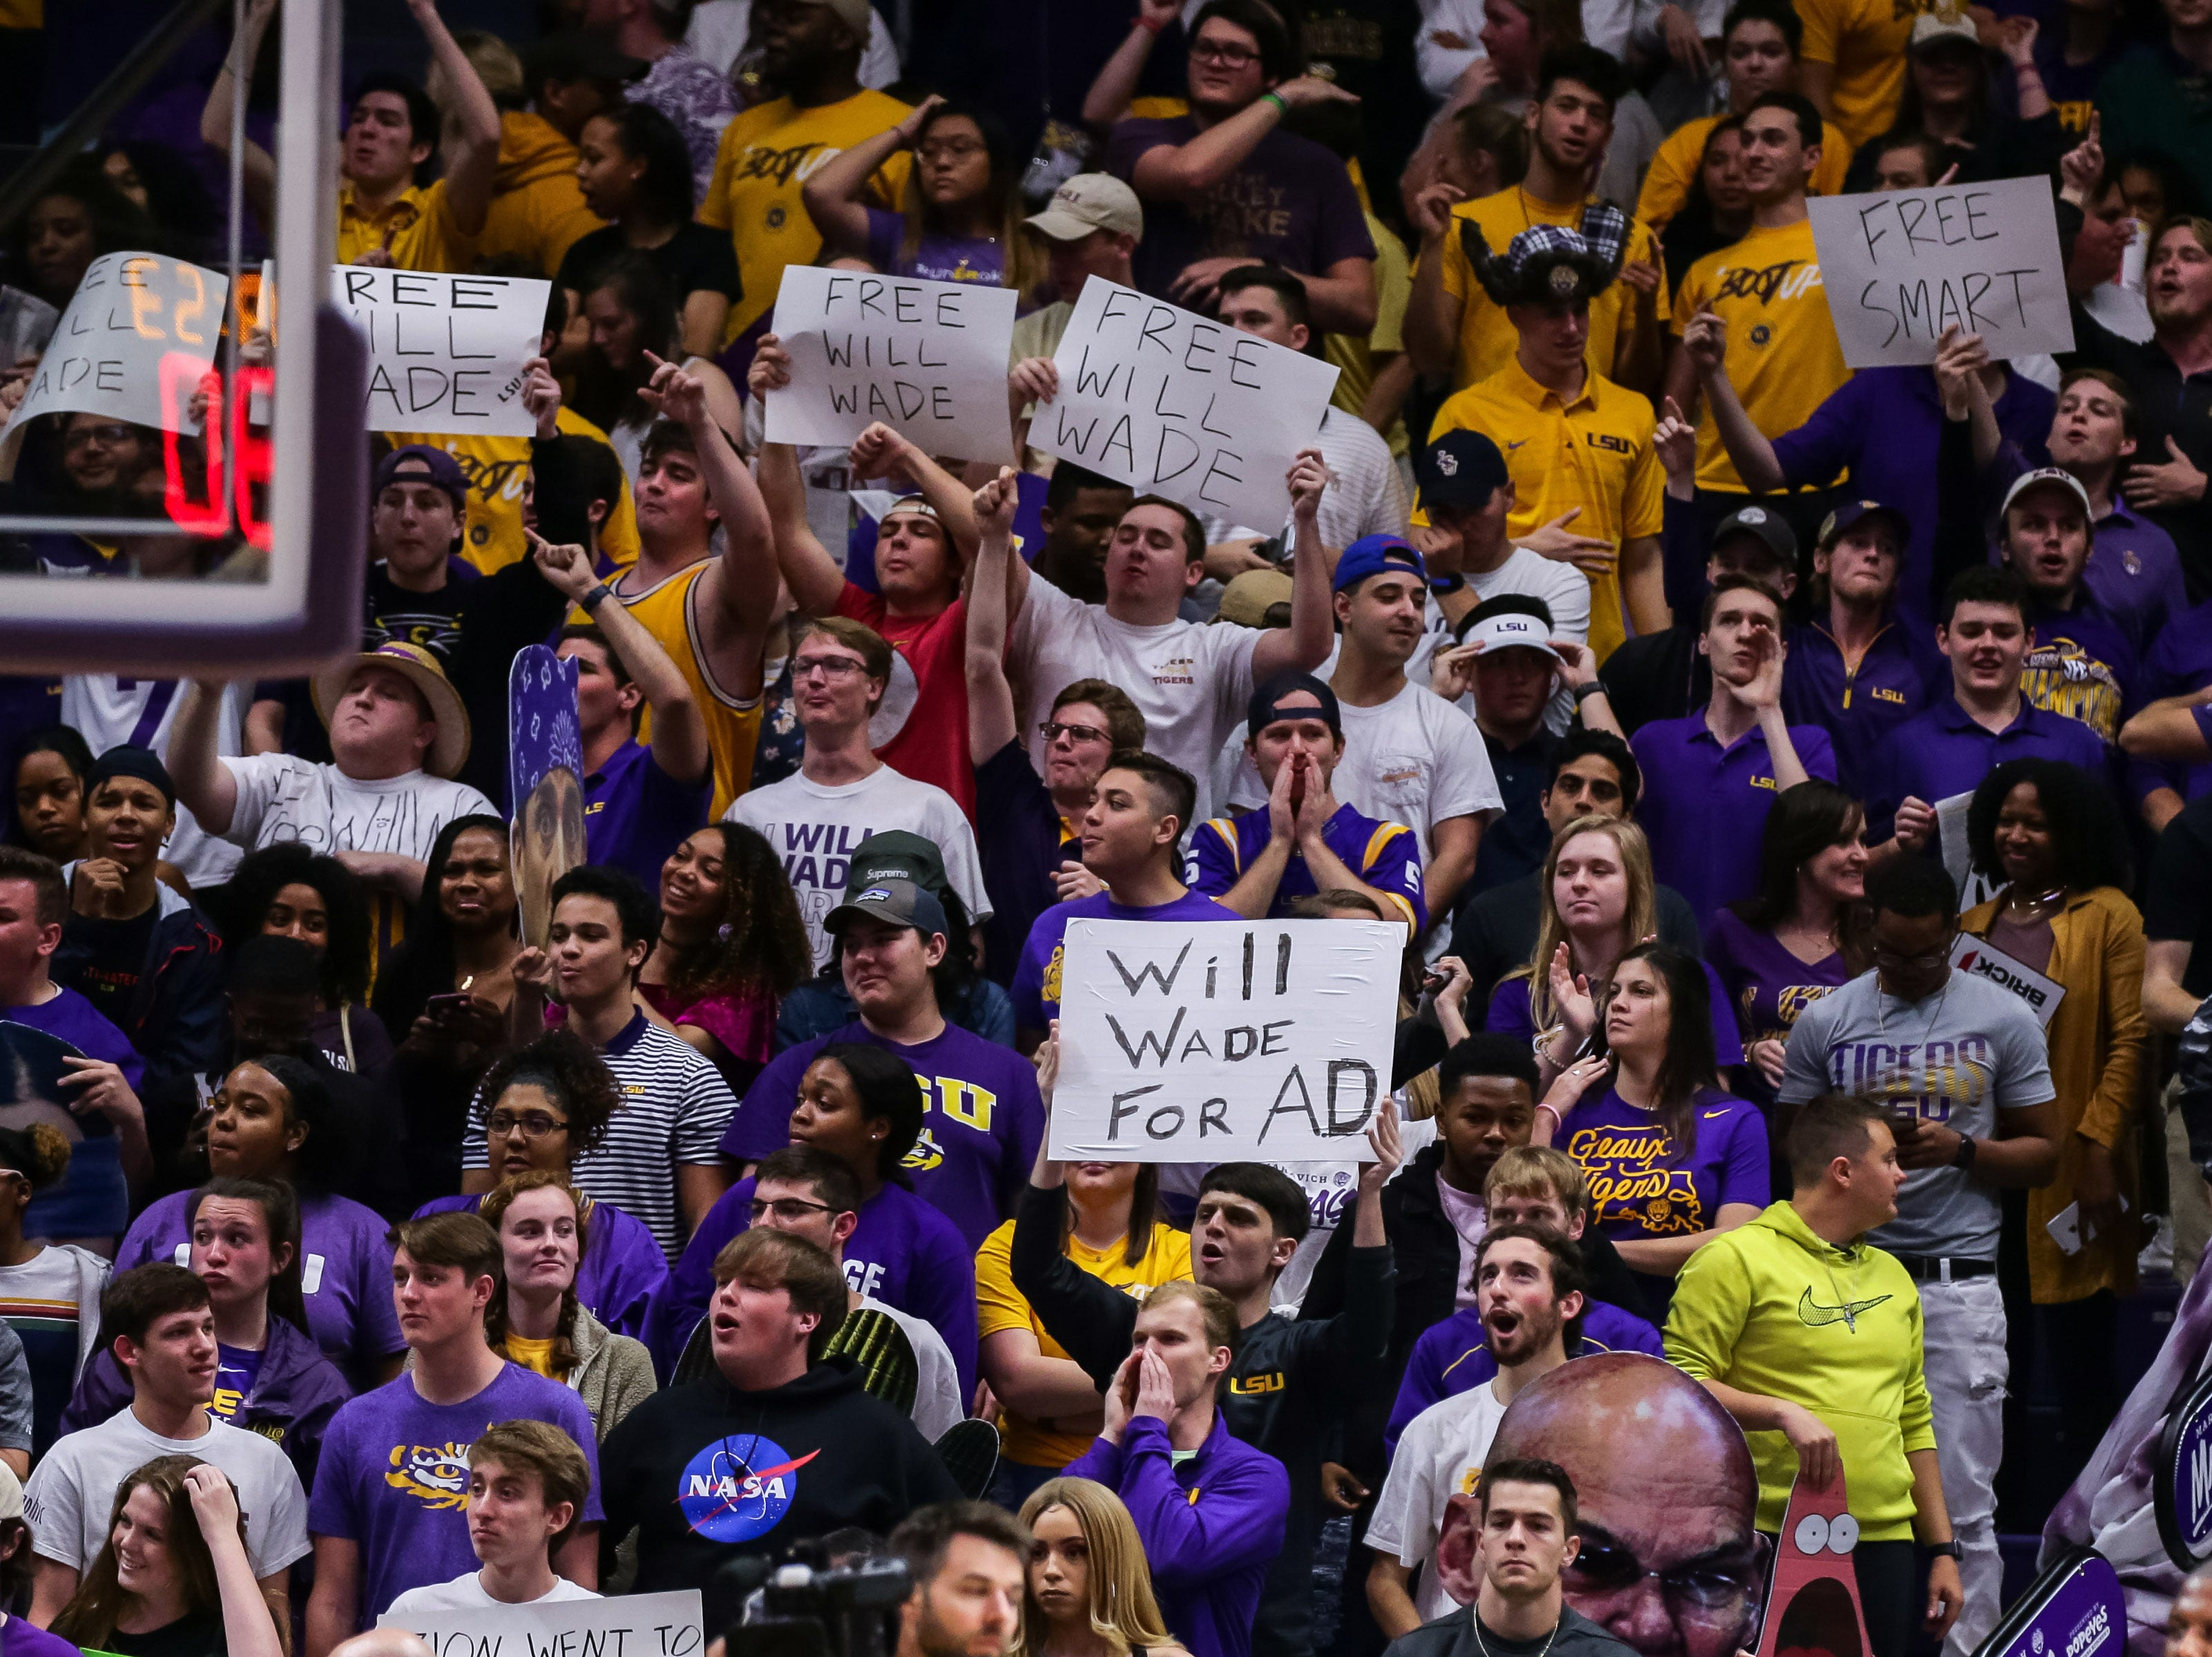 Mar 9, 2019; Baton Rouge, LA, USA; LSU Tigers student section show support for coach Will Wade agasint Vanderbilt Commodores in the first half at Maravich Assembly Center. Mandatory Credit: Stephen Lew-USA TODAY Sports